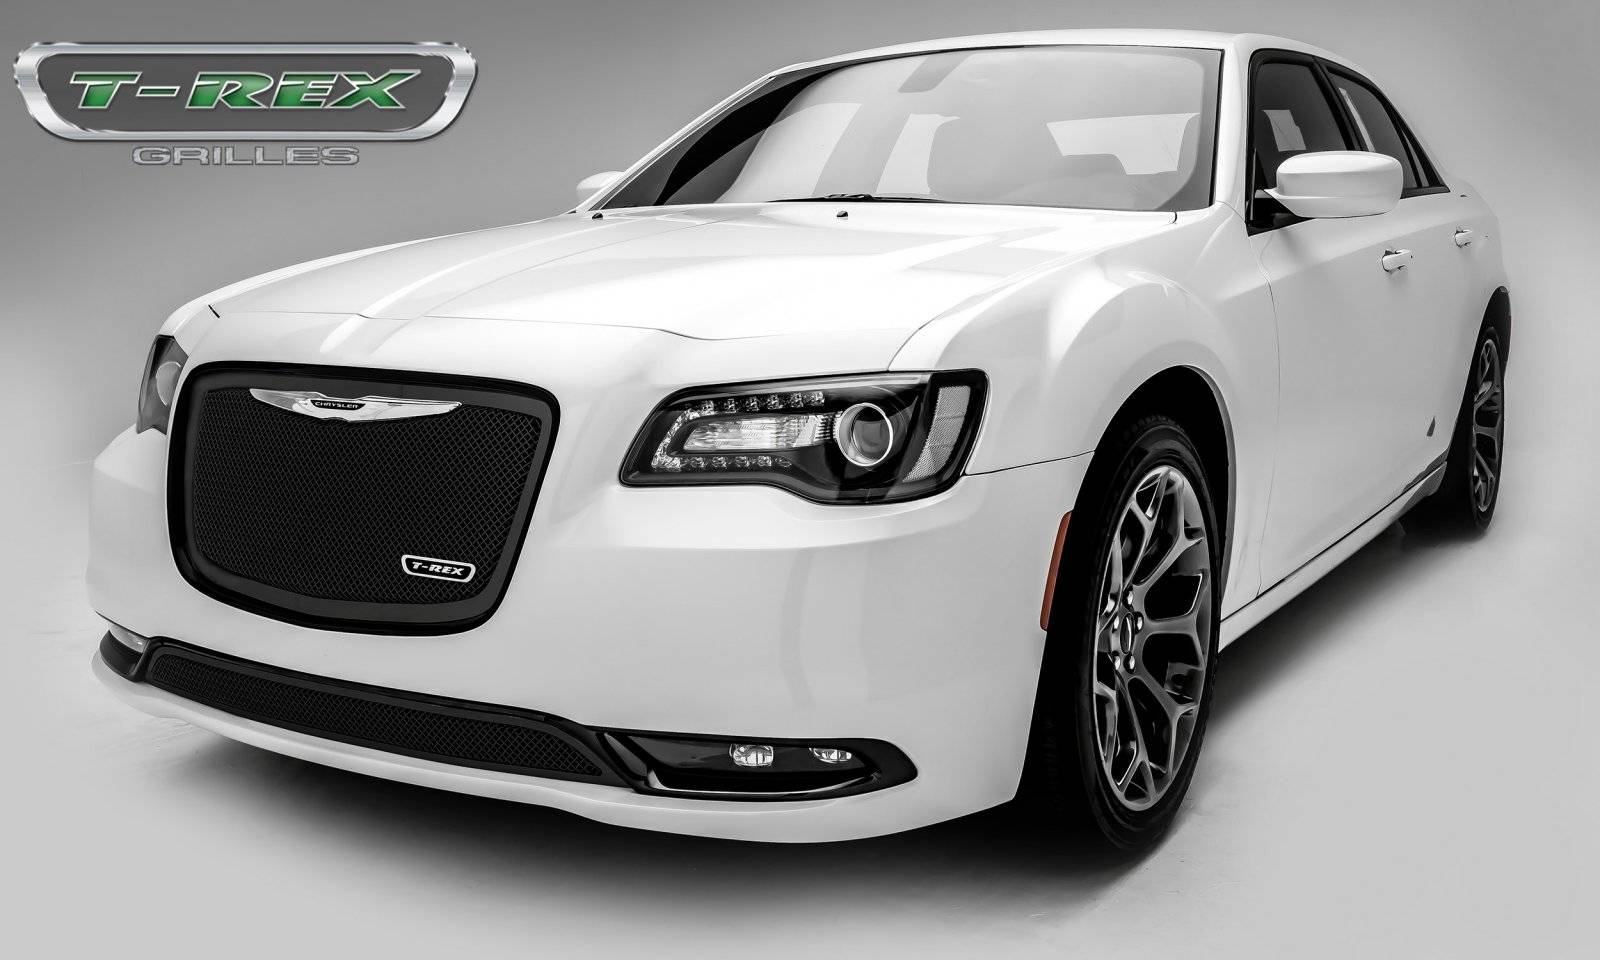 Chrysler 300 - Upper Class Series - Main Grille Replacement with Black Powder Coat Finish - Pt # 51436